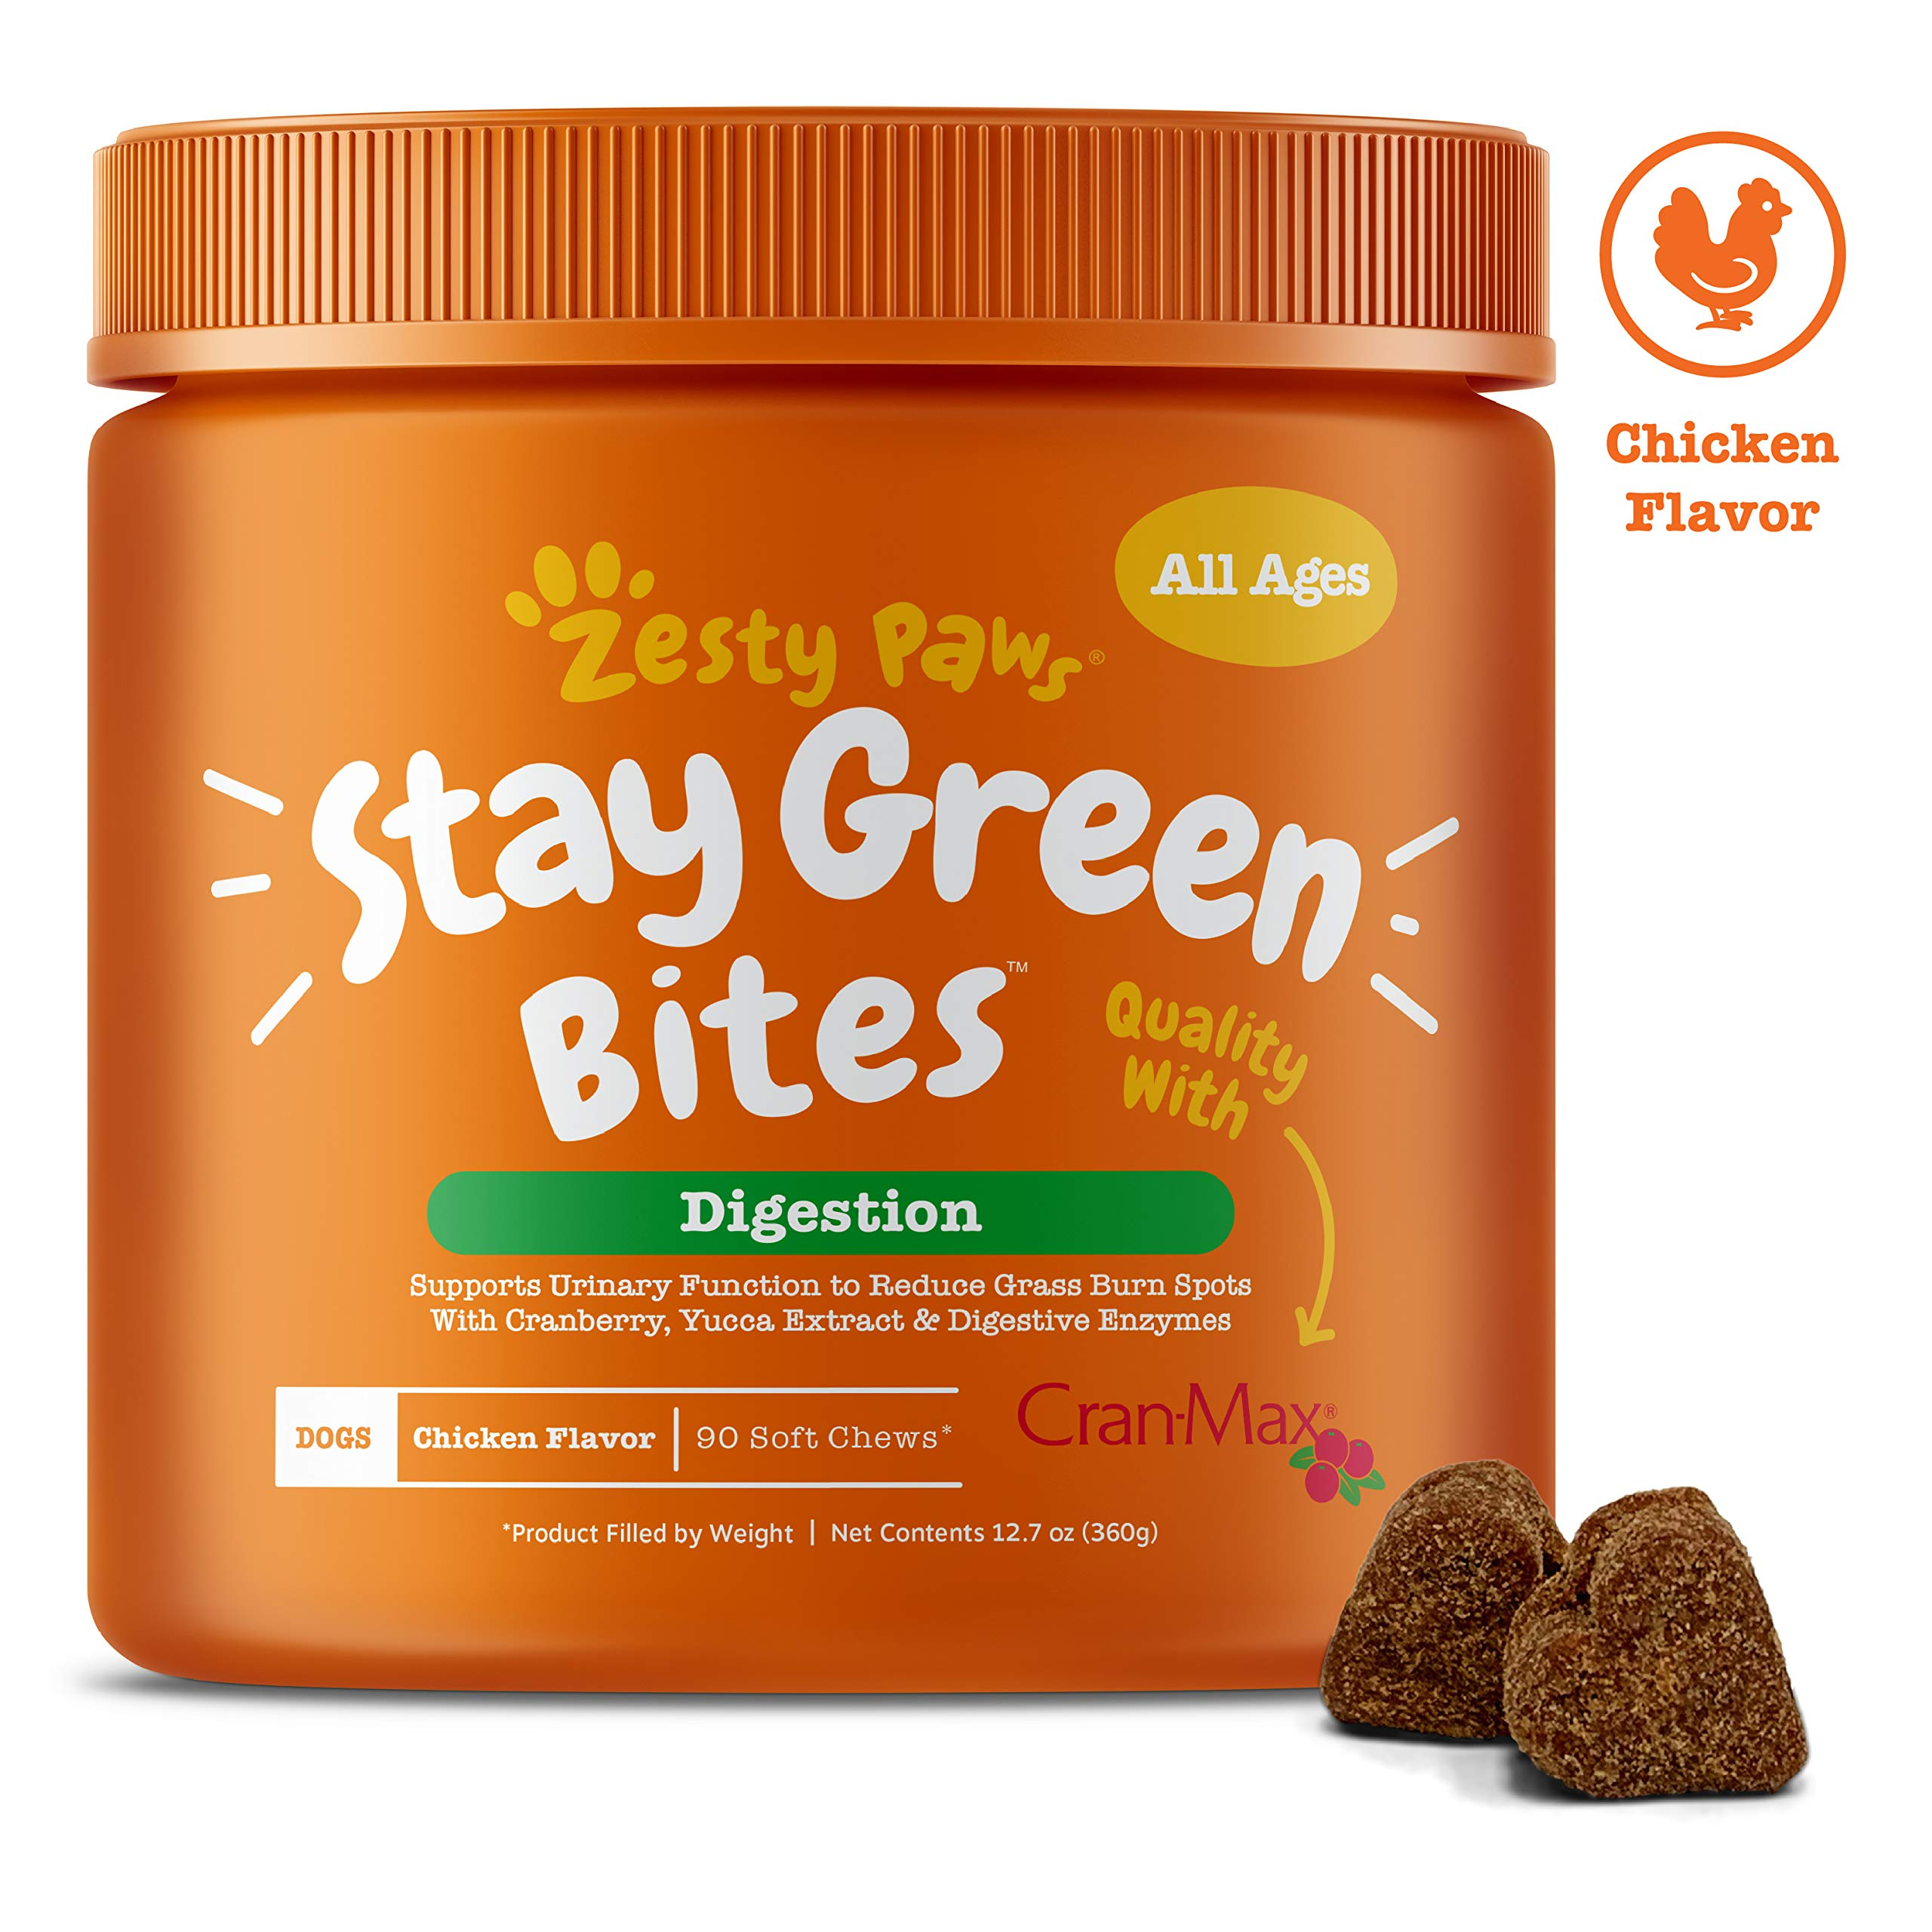 Zesty Paws Stay Green Bites for Dogs - Grass Burn Soft Chews for Lawn Spots Caused by Dog Urine - Cran-Max Cranberry for Urinary Tract & Bladder - with Apple Cider Vinegar + Digestive Enzymes - 90 Ct by Zesty Paws